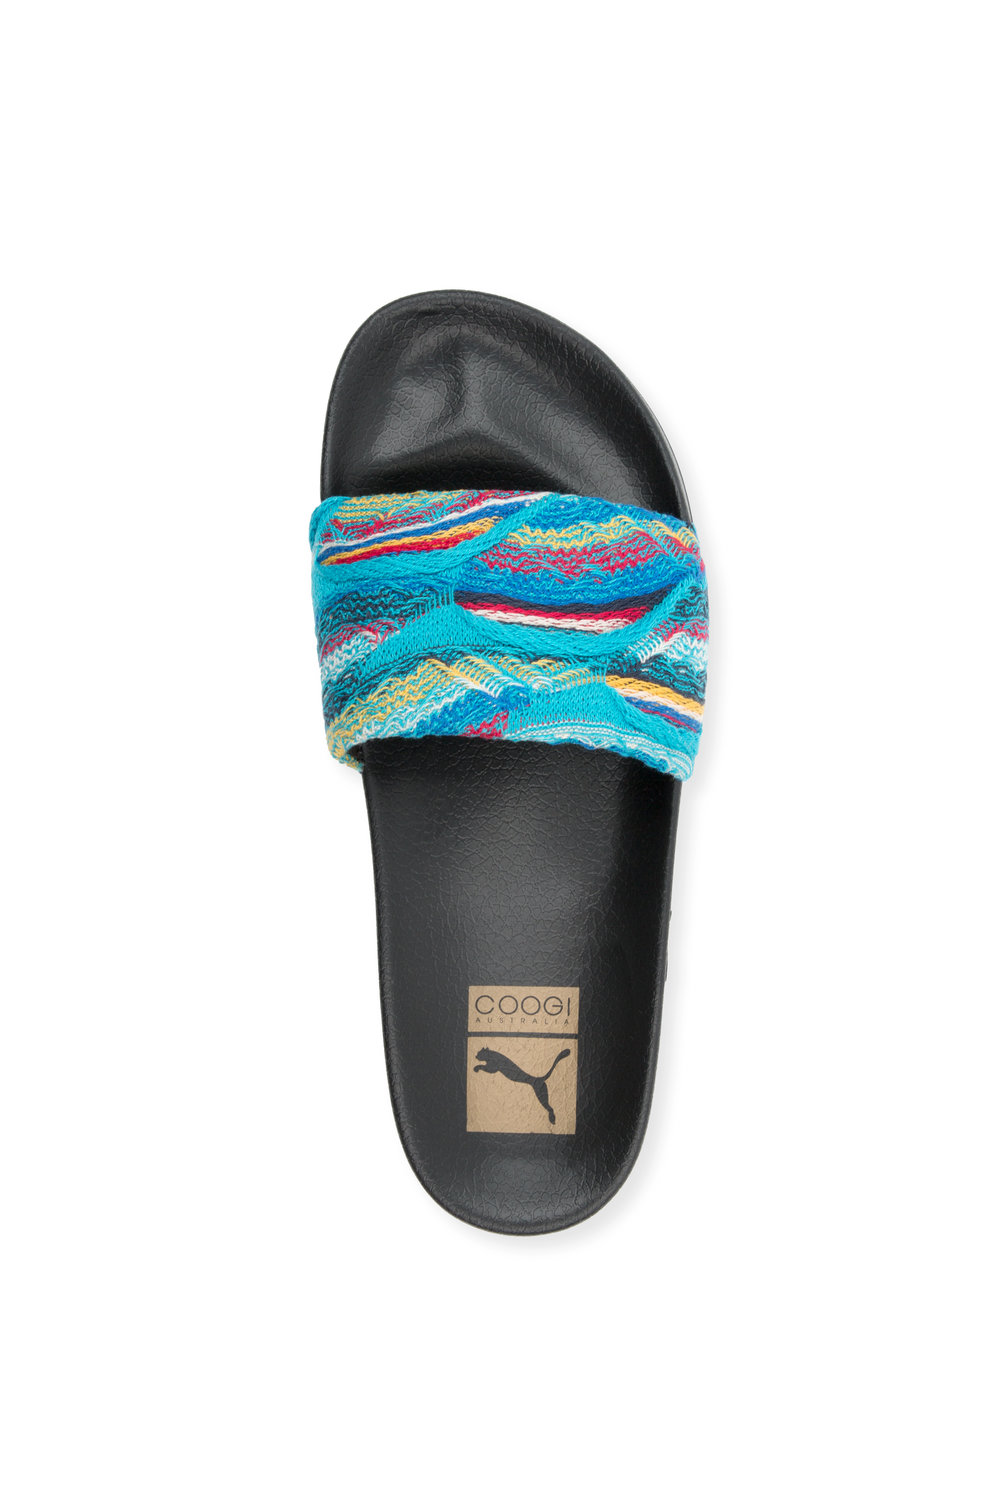 18SS_SP_Select_Coogi_Product_SANDALV1_02_RGB.jpg